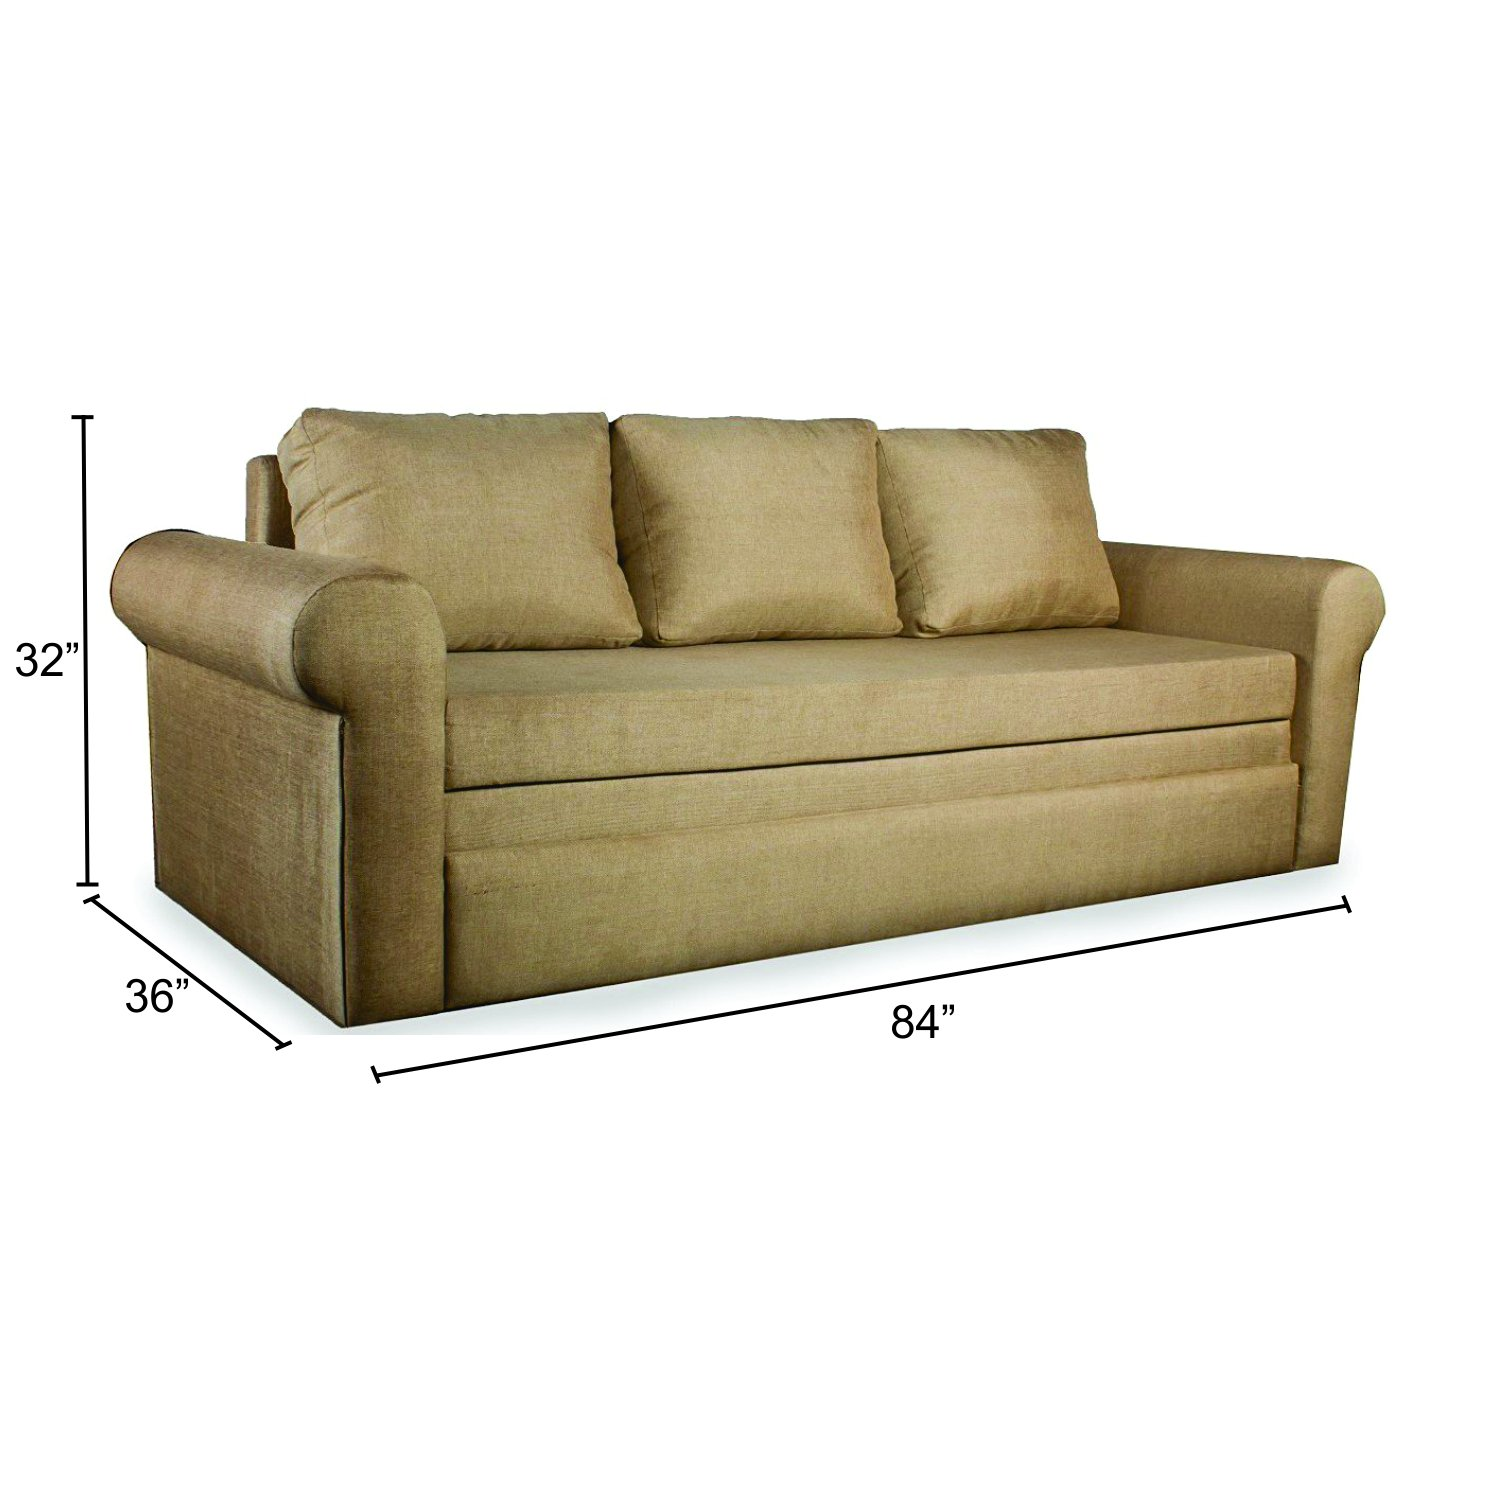 Mubell Kobi Sofa Cum Bed 7 Feet Wide Custom Upholstery Available